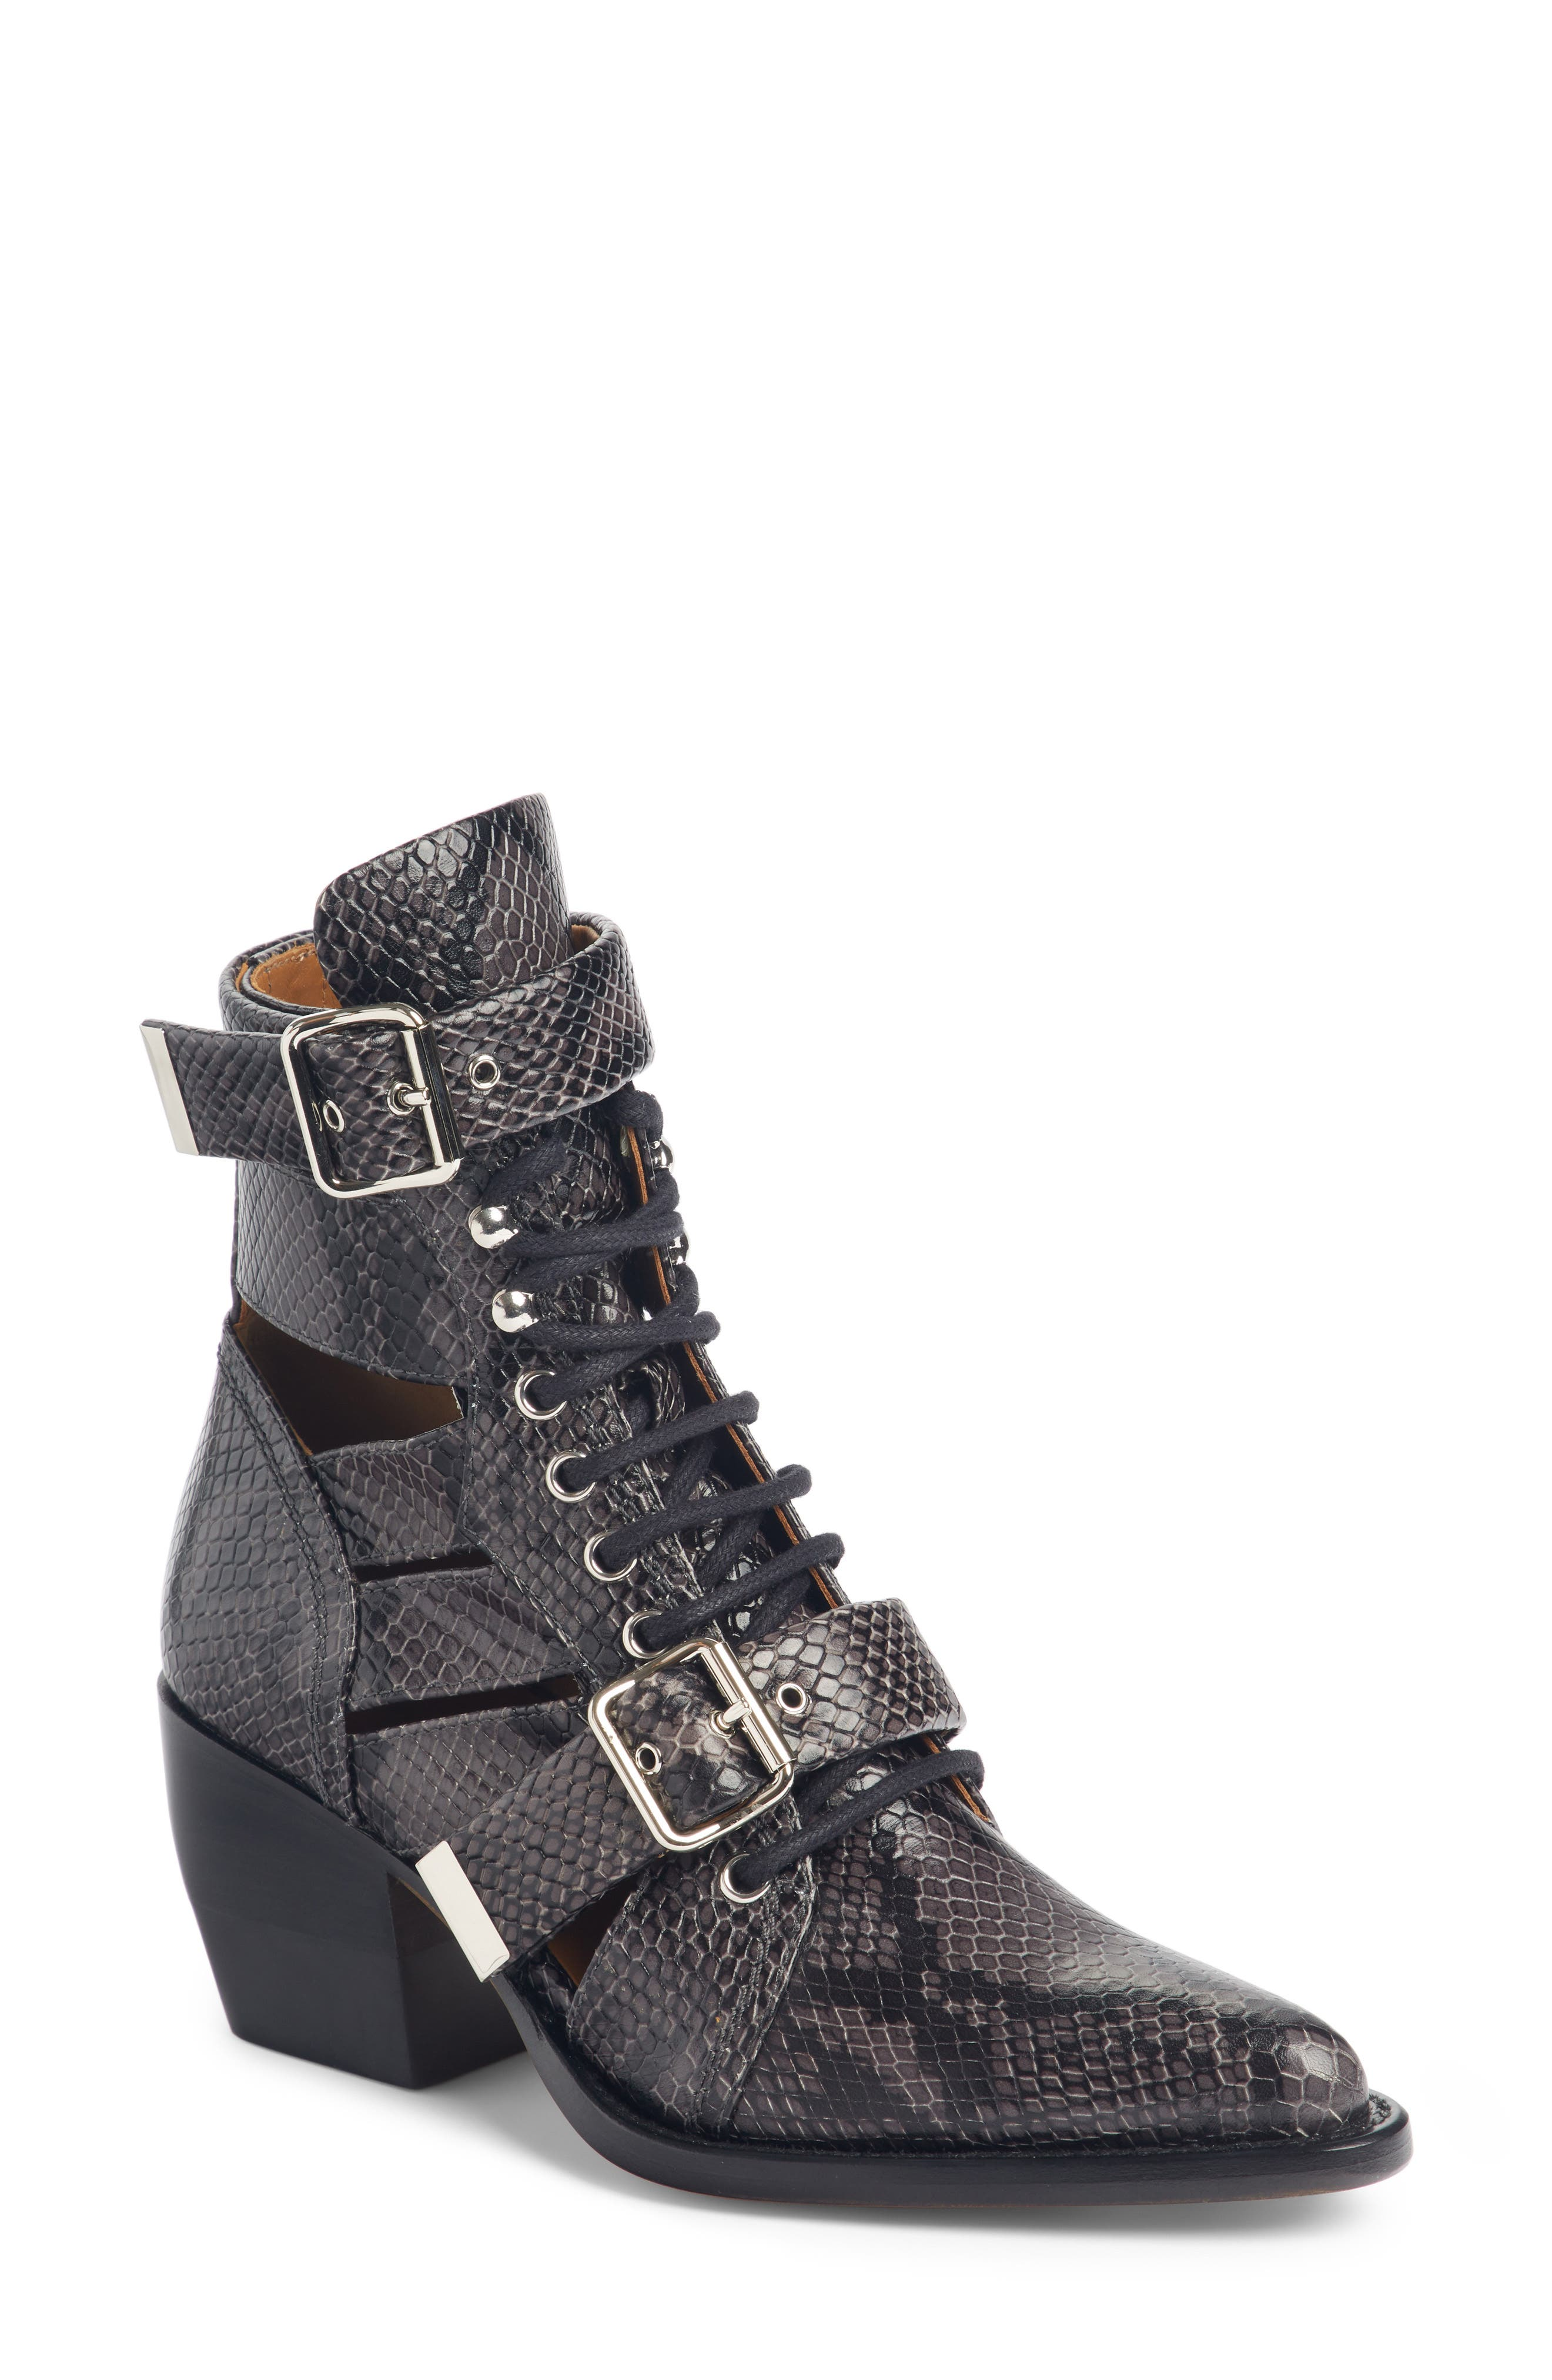 CHLOÉ Rylee Caged Pointy Toe Boot, Main, color, CHARCOAL BLACK